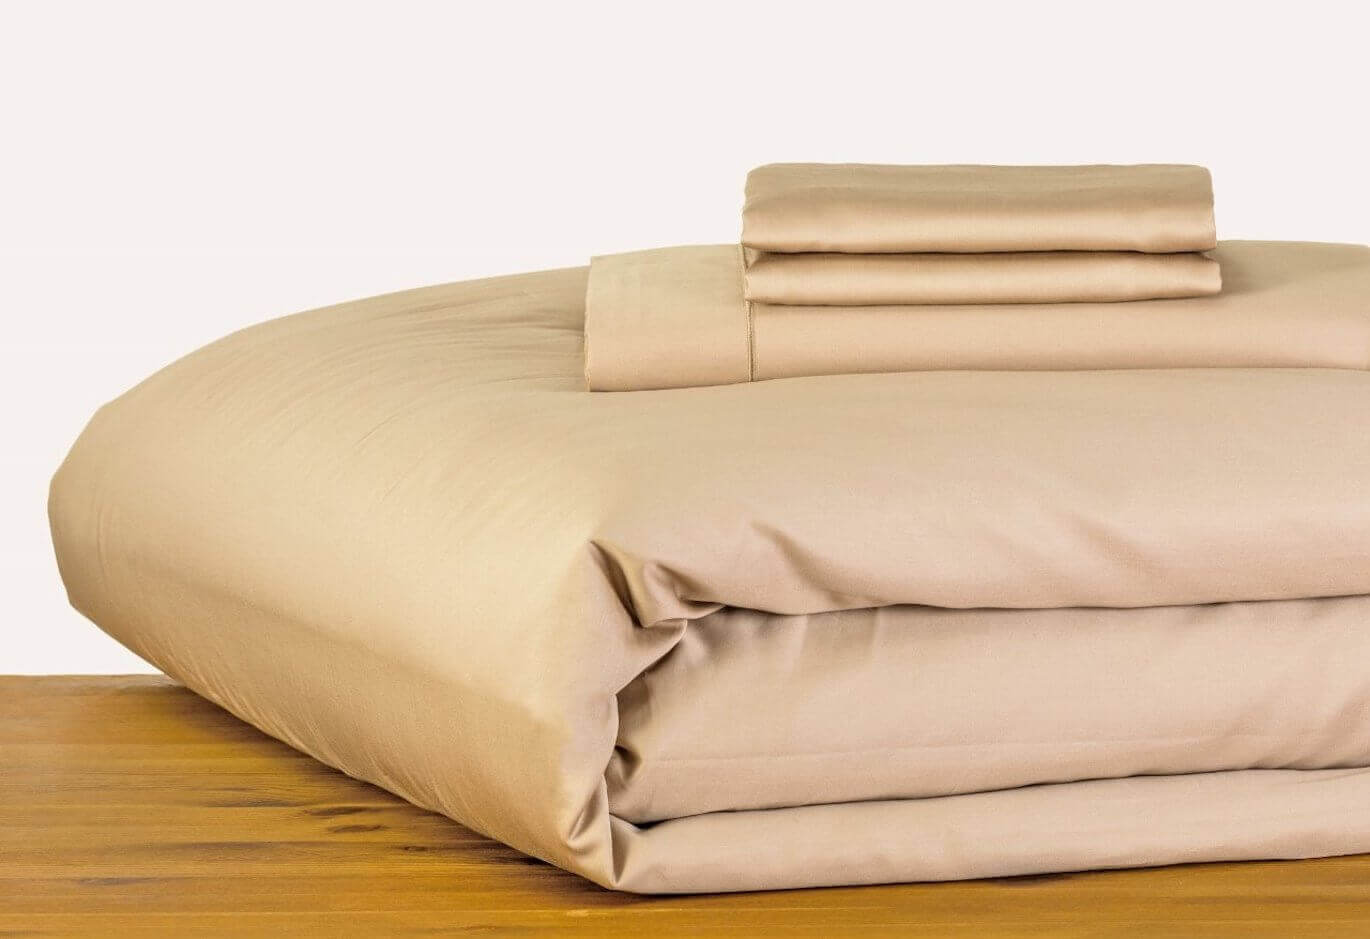 marialma's beige bed sheets on a wooden table